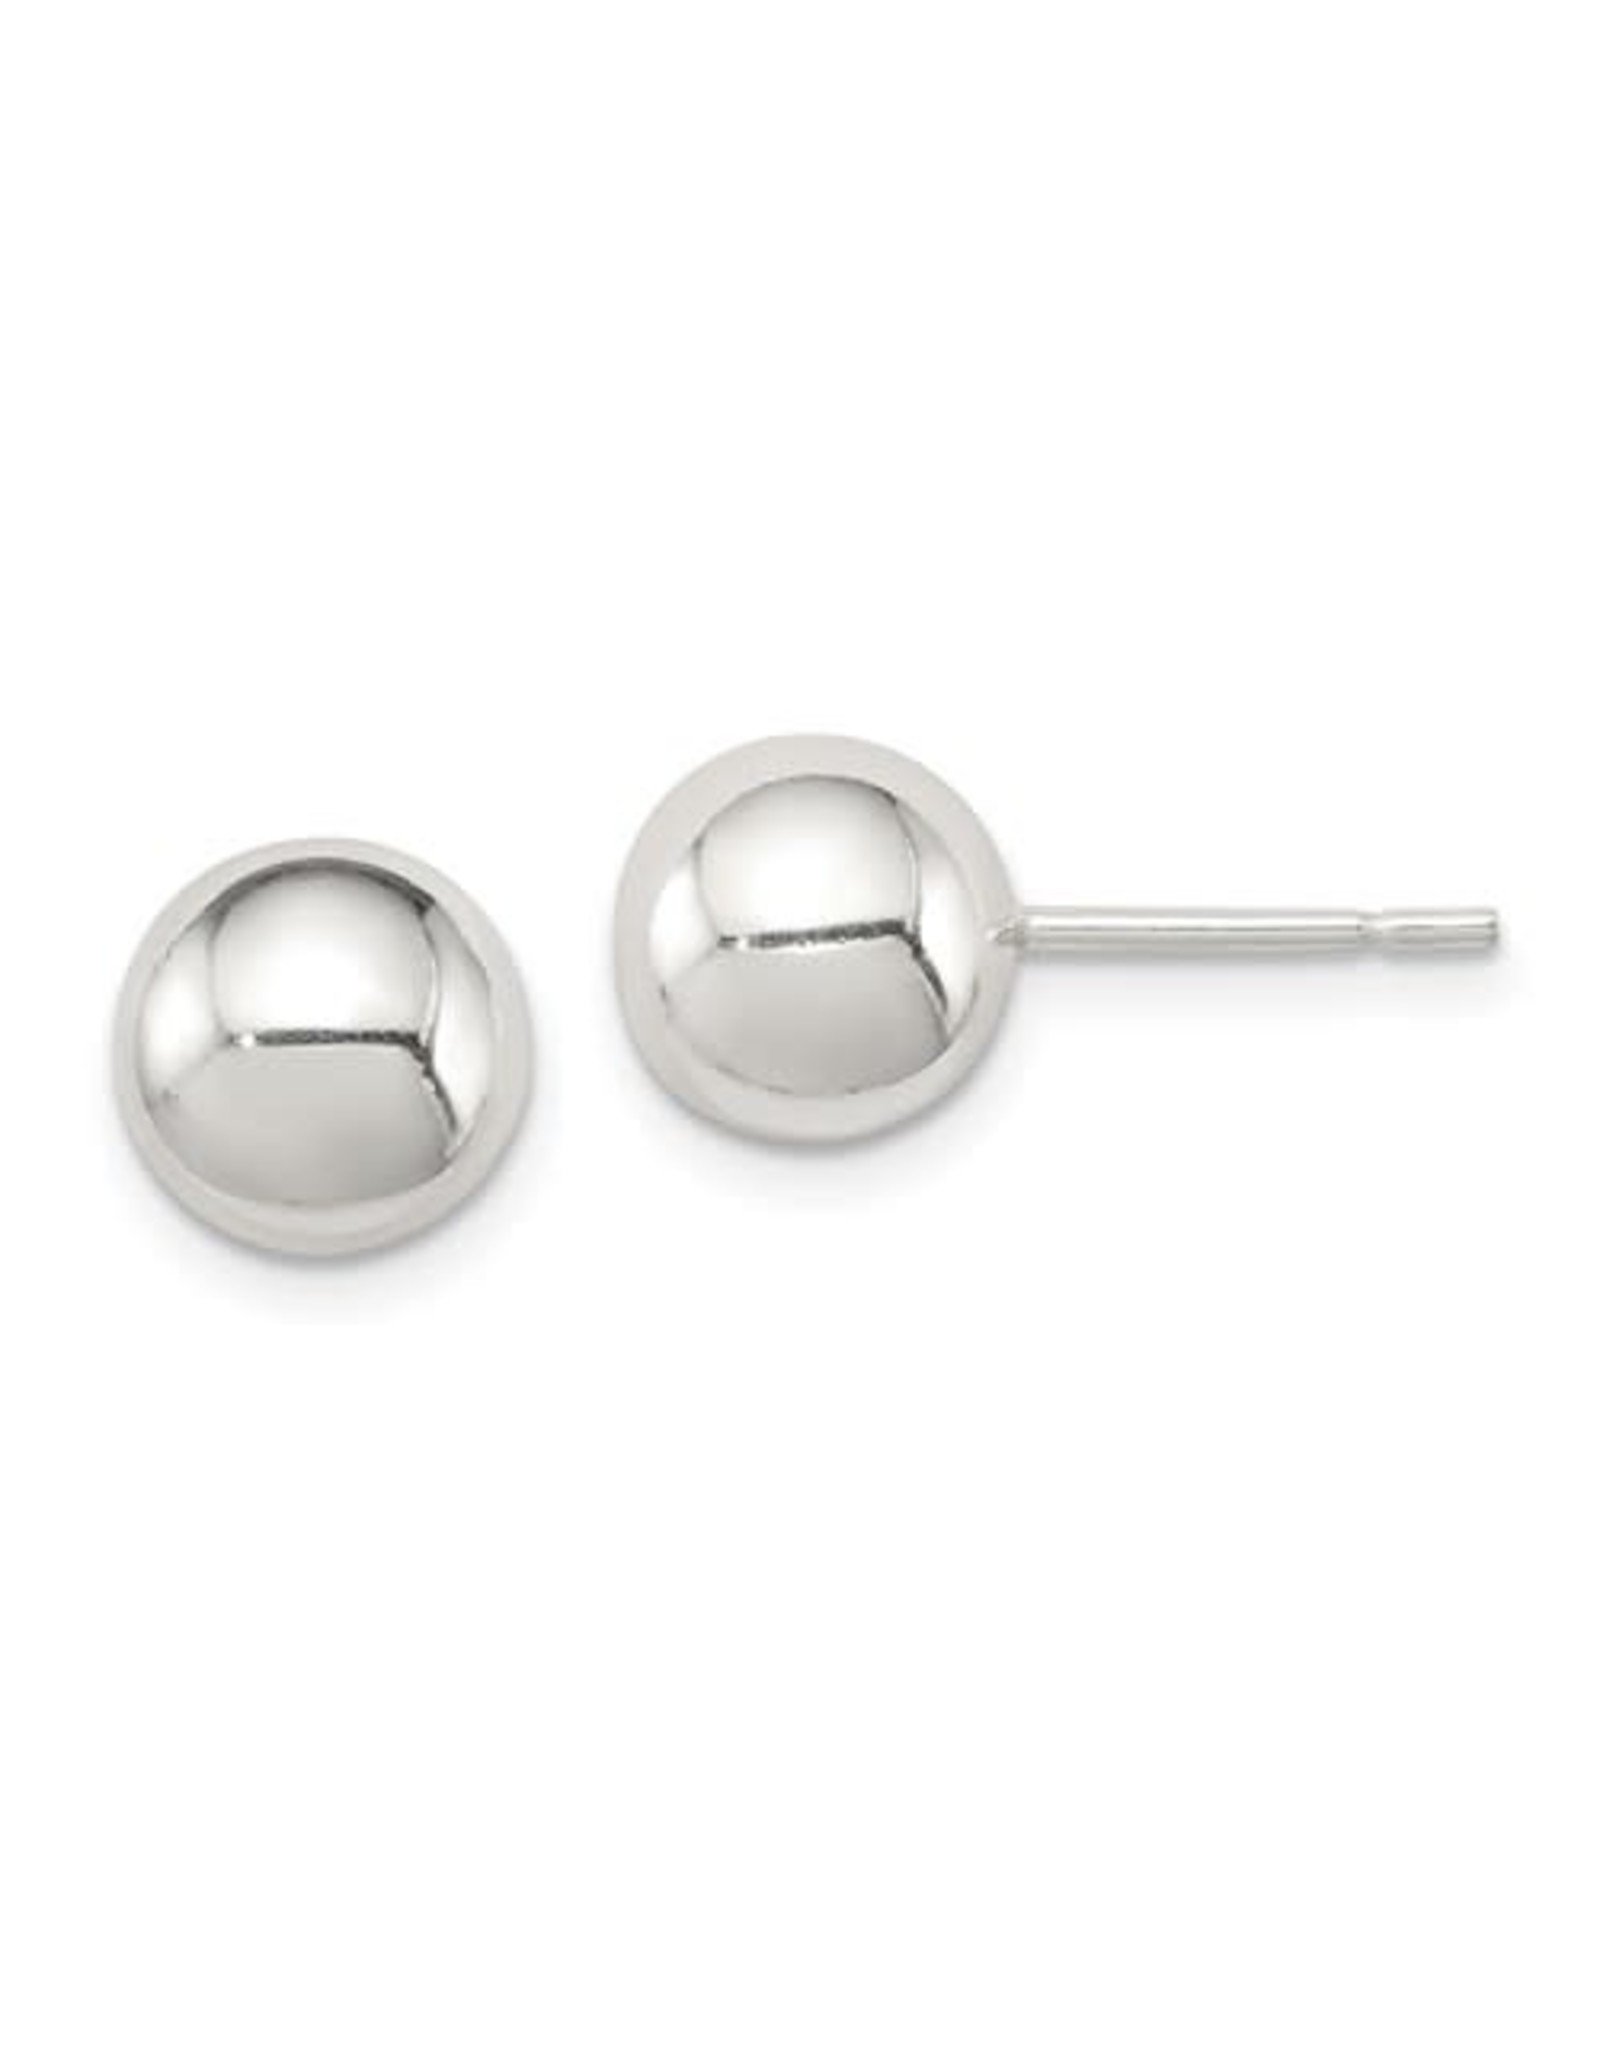 14K White Gold 8mm Ball Stud Earrings with Friction Backs